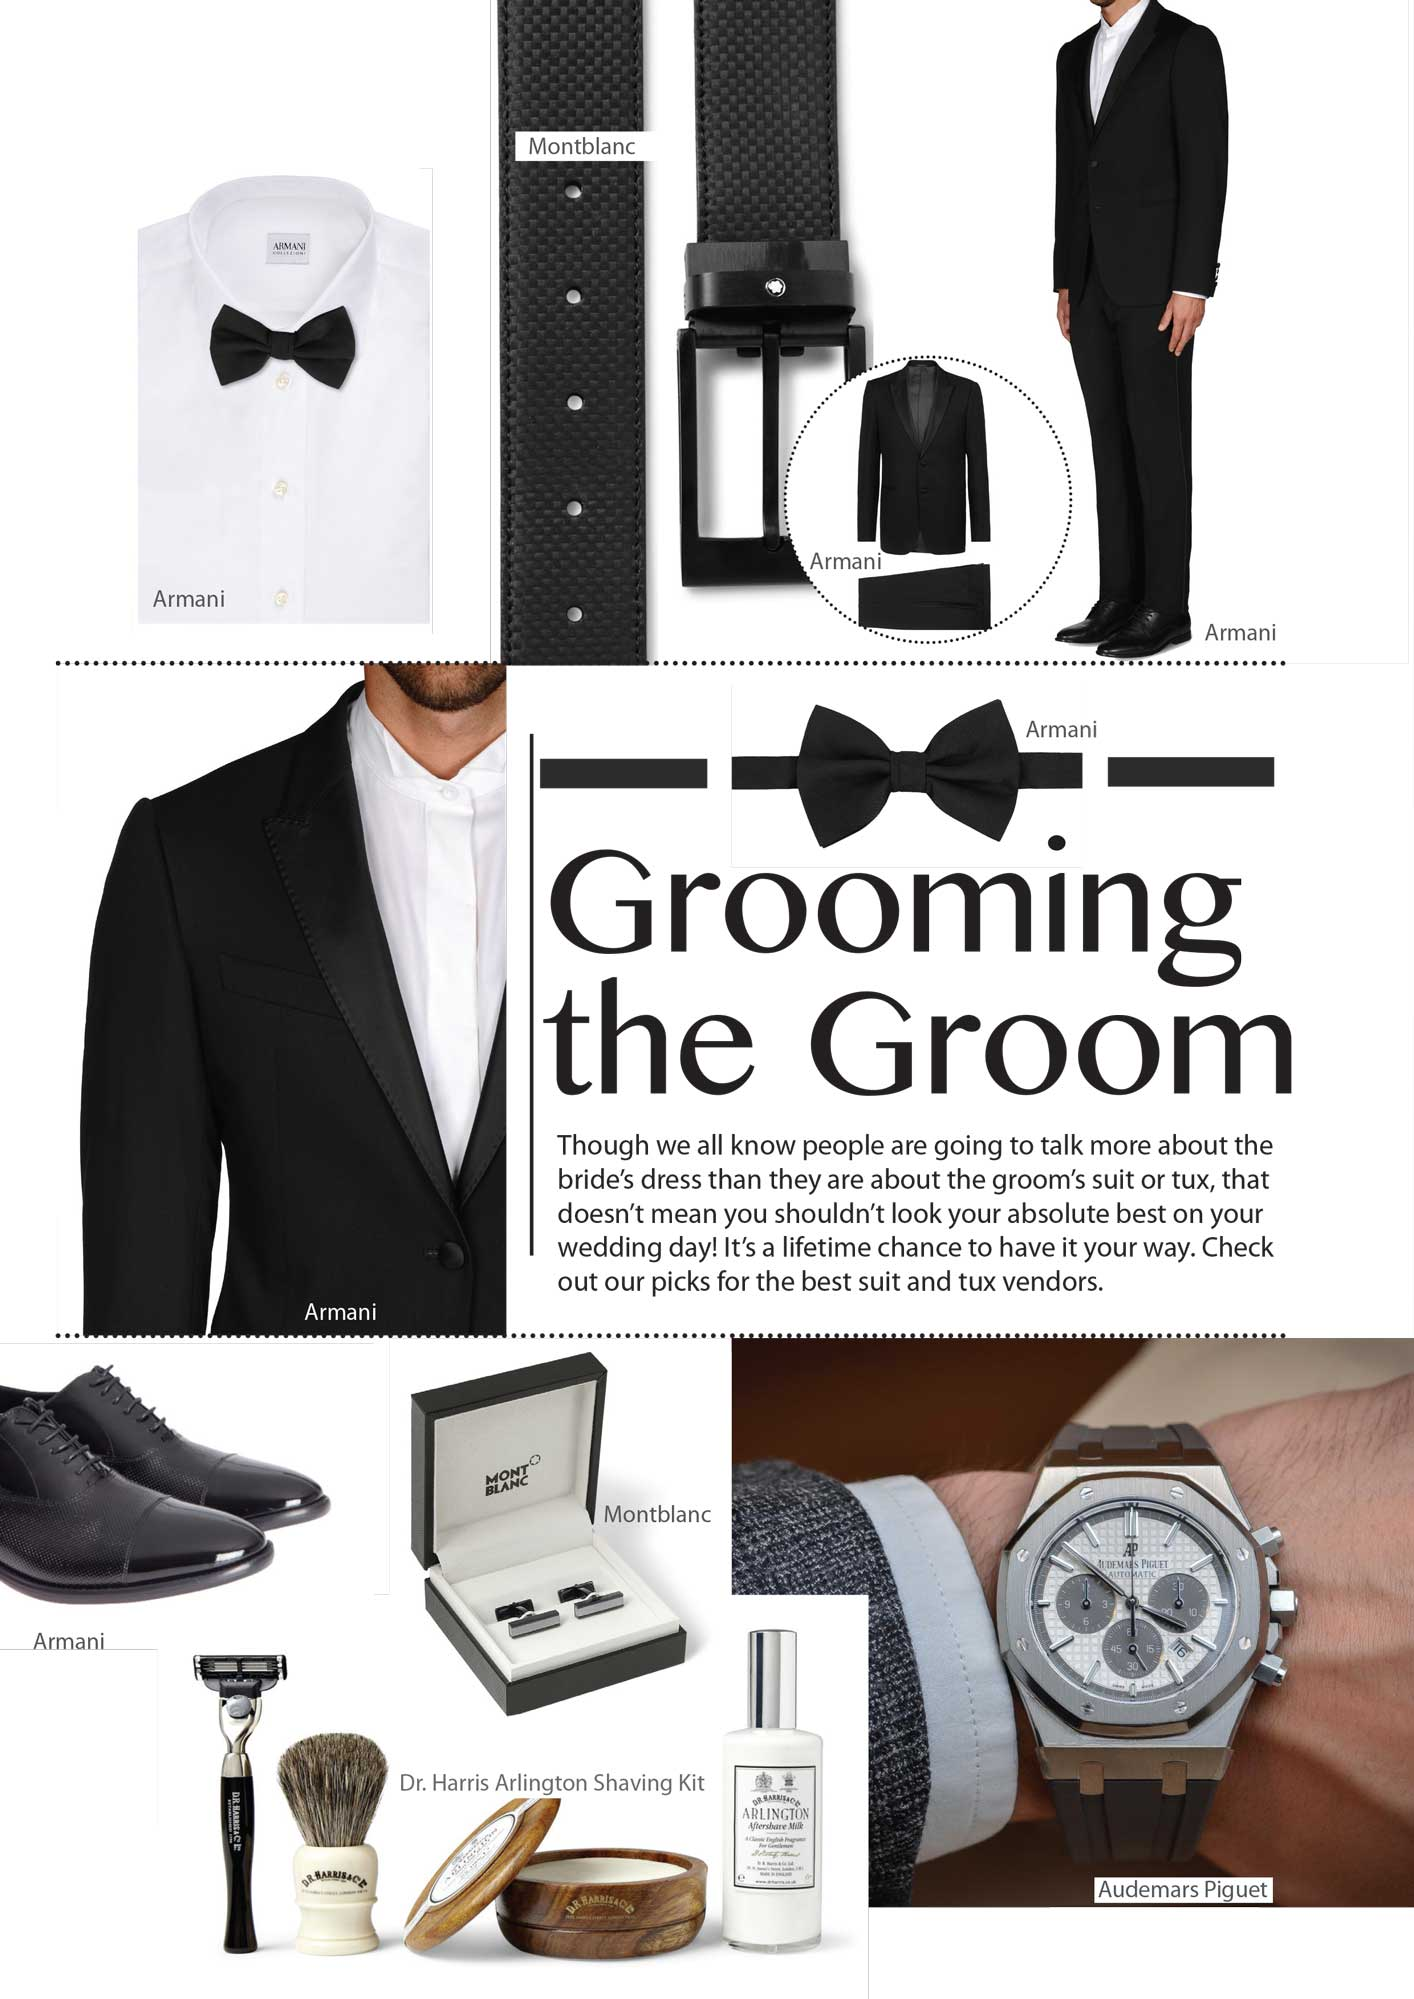 Though we all know people are going to talk more about the bride's dress than they are about the groom's suit or tux, that doesn't mean you shouldn't look your absolute best on your wedding day! It's a lifetime chance to have it your way. Check out our picks for the best suit and tux vendors.